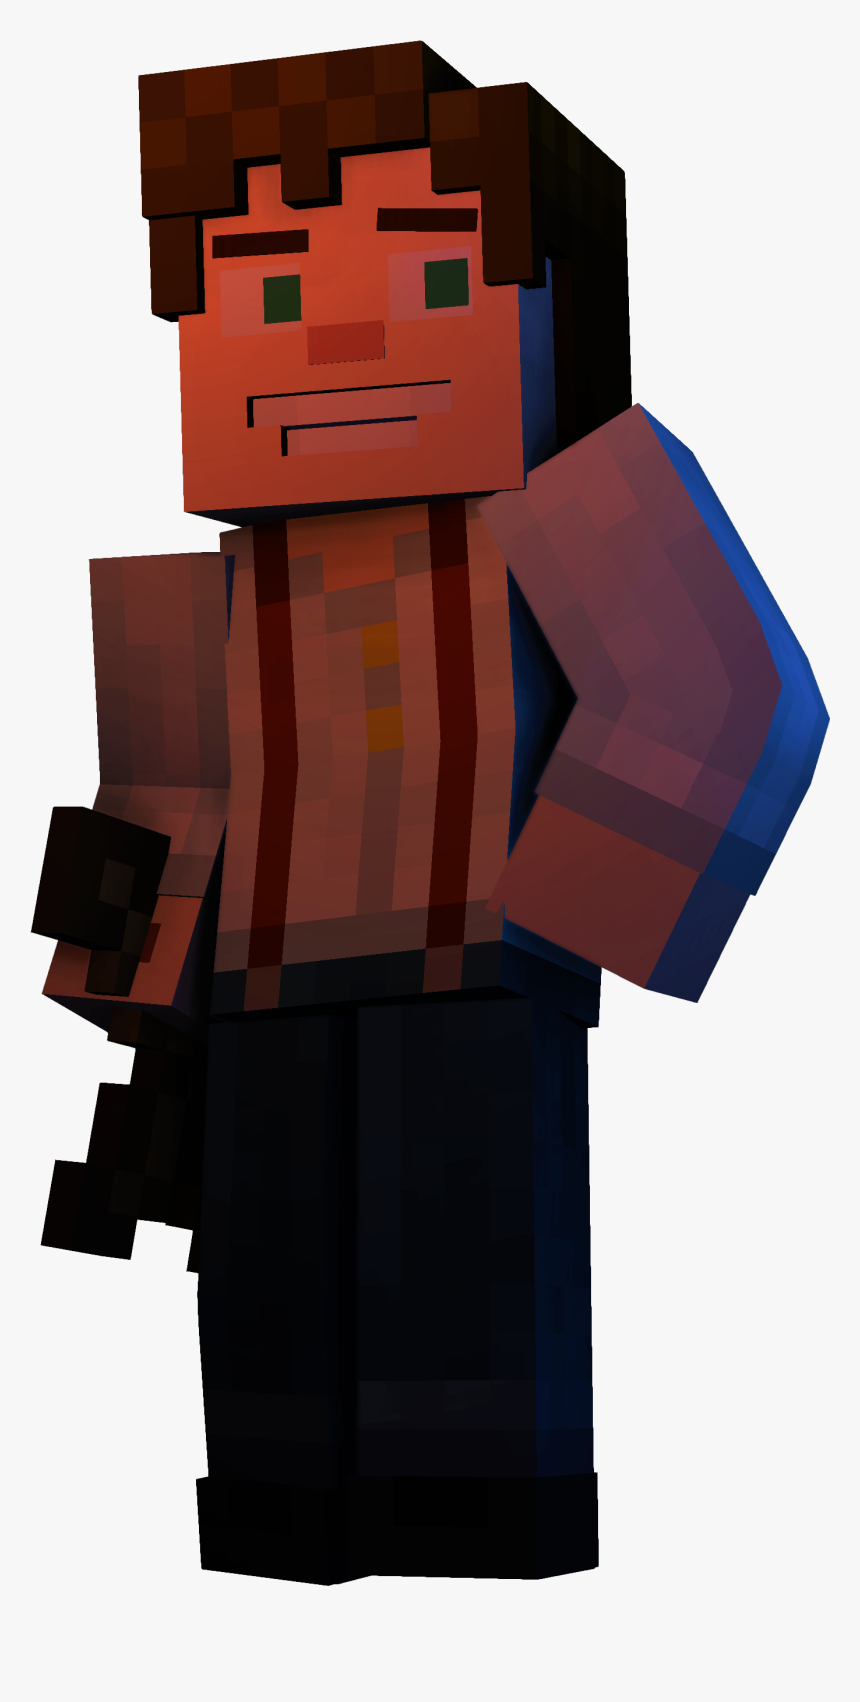 1lfmiox Male Jesse Minecraft Story Mode Hd Png Download